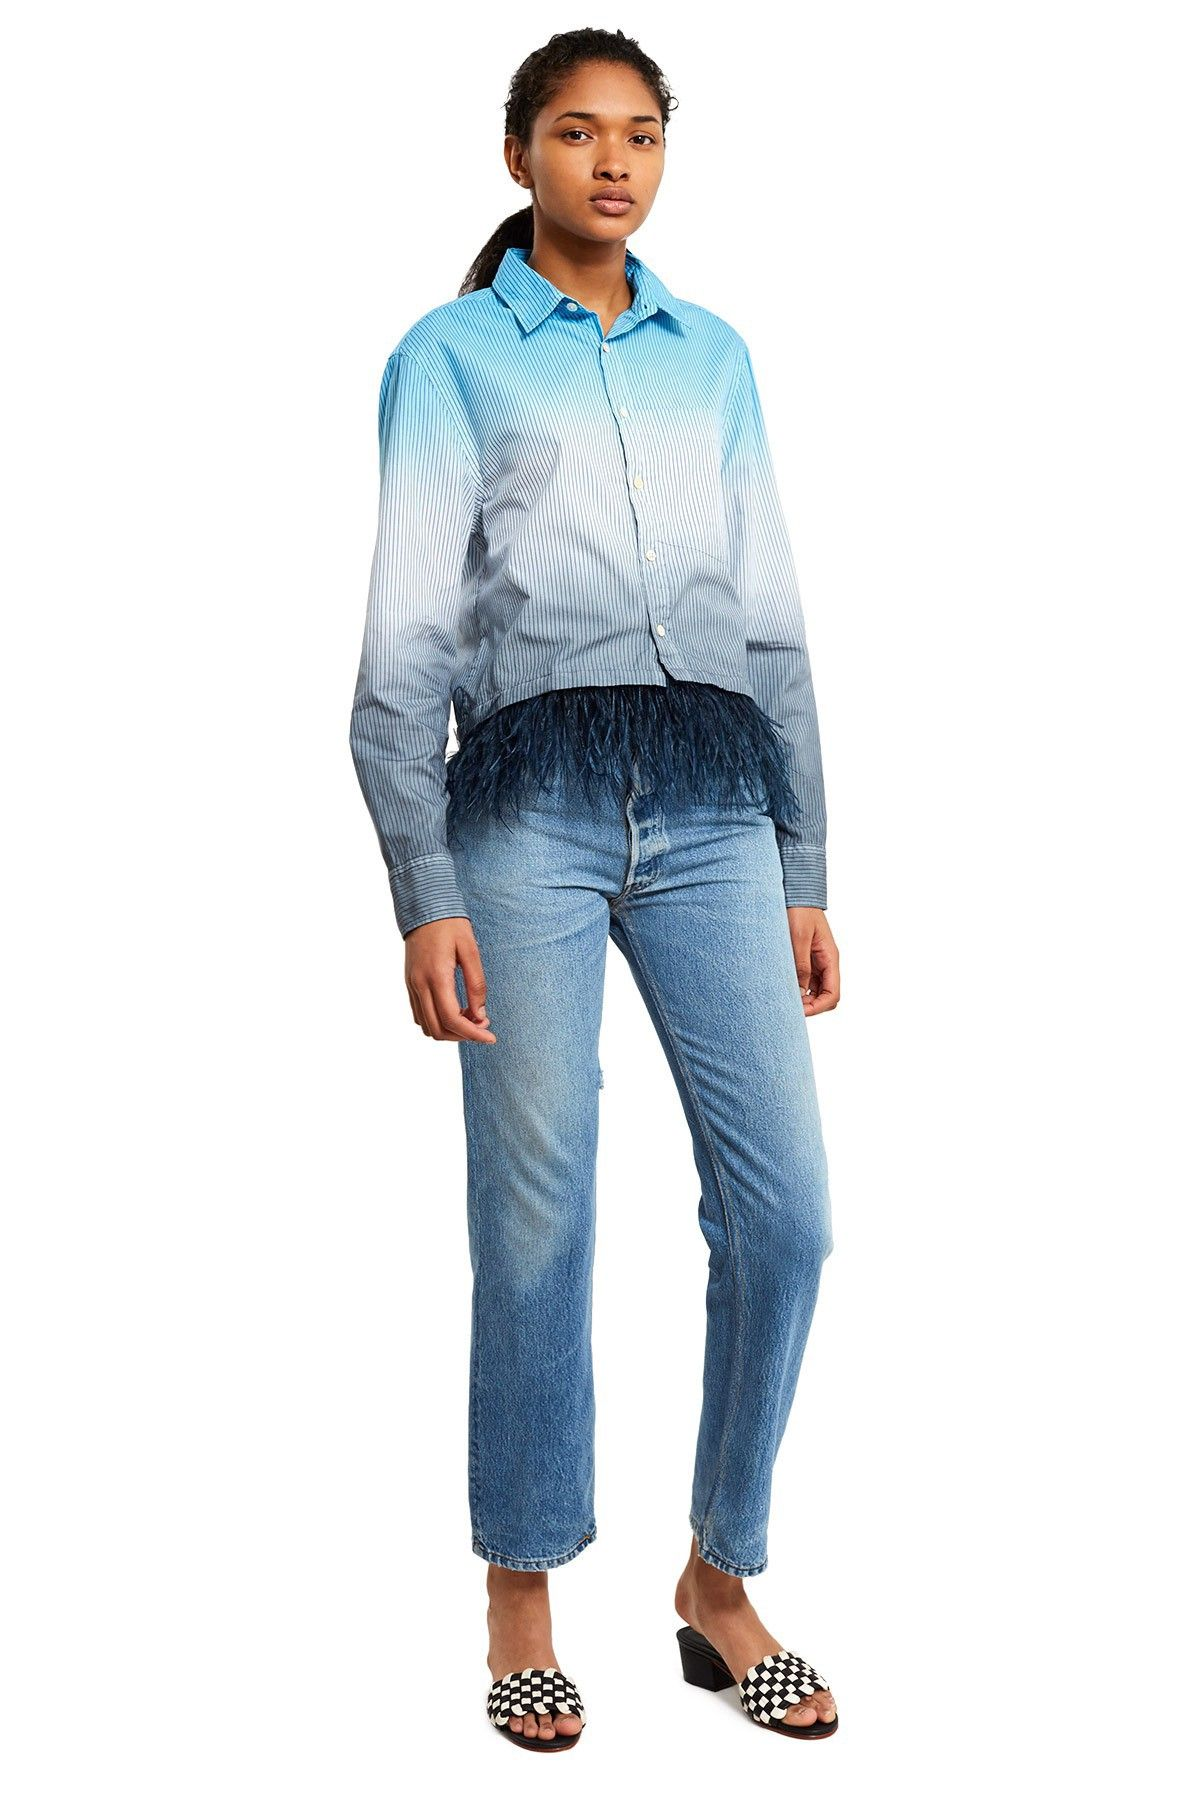 bcd574322d2a87 Opening Ceremony Dip Dye Cropped Feather Shirt - Pale Blue Multi Xs ...